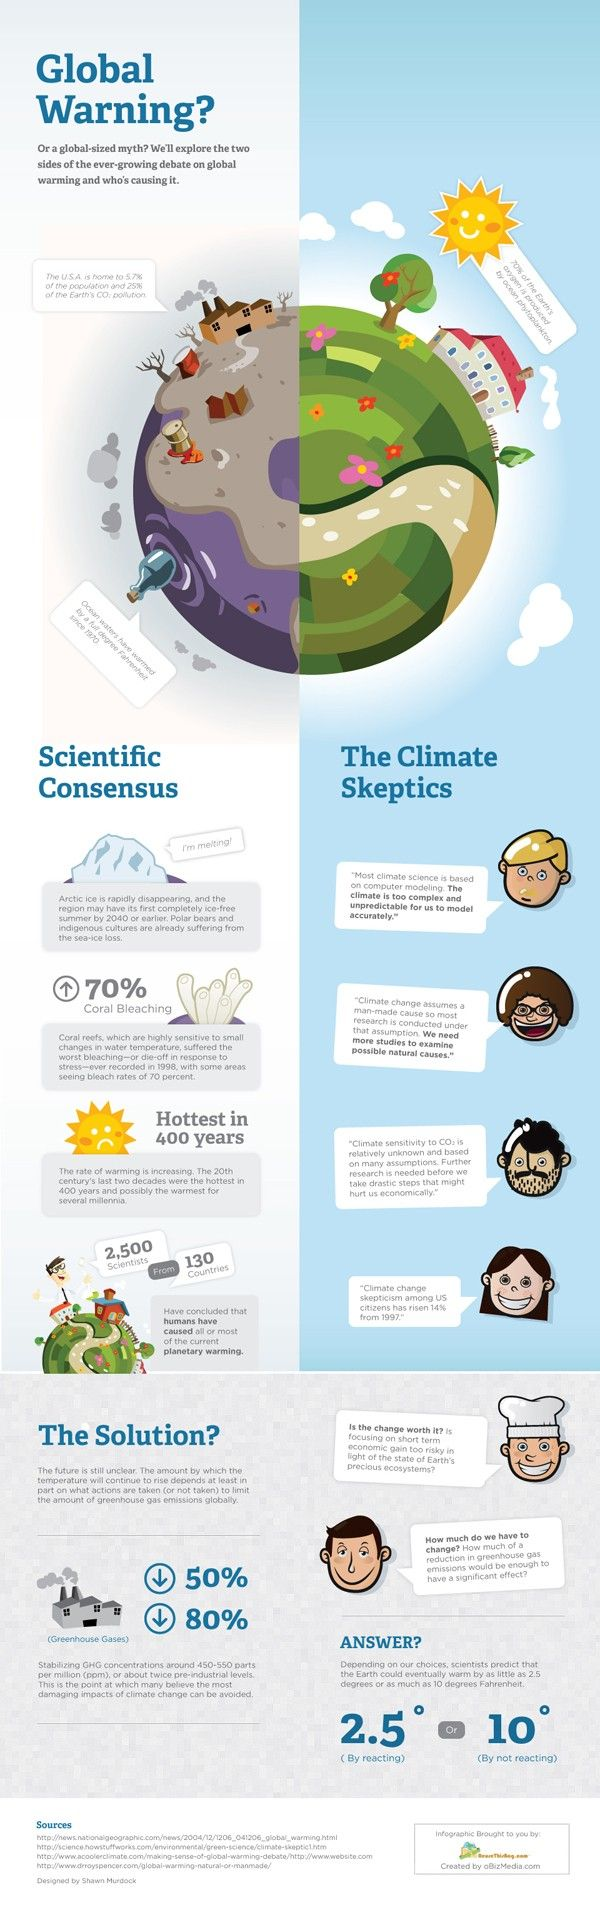 Global Warming: Scientists vs. Climate Skeptics